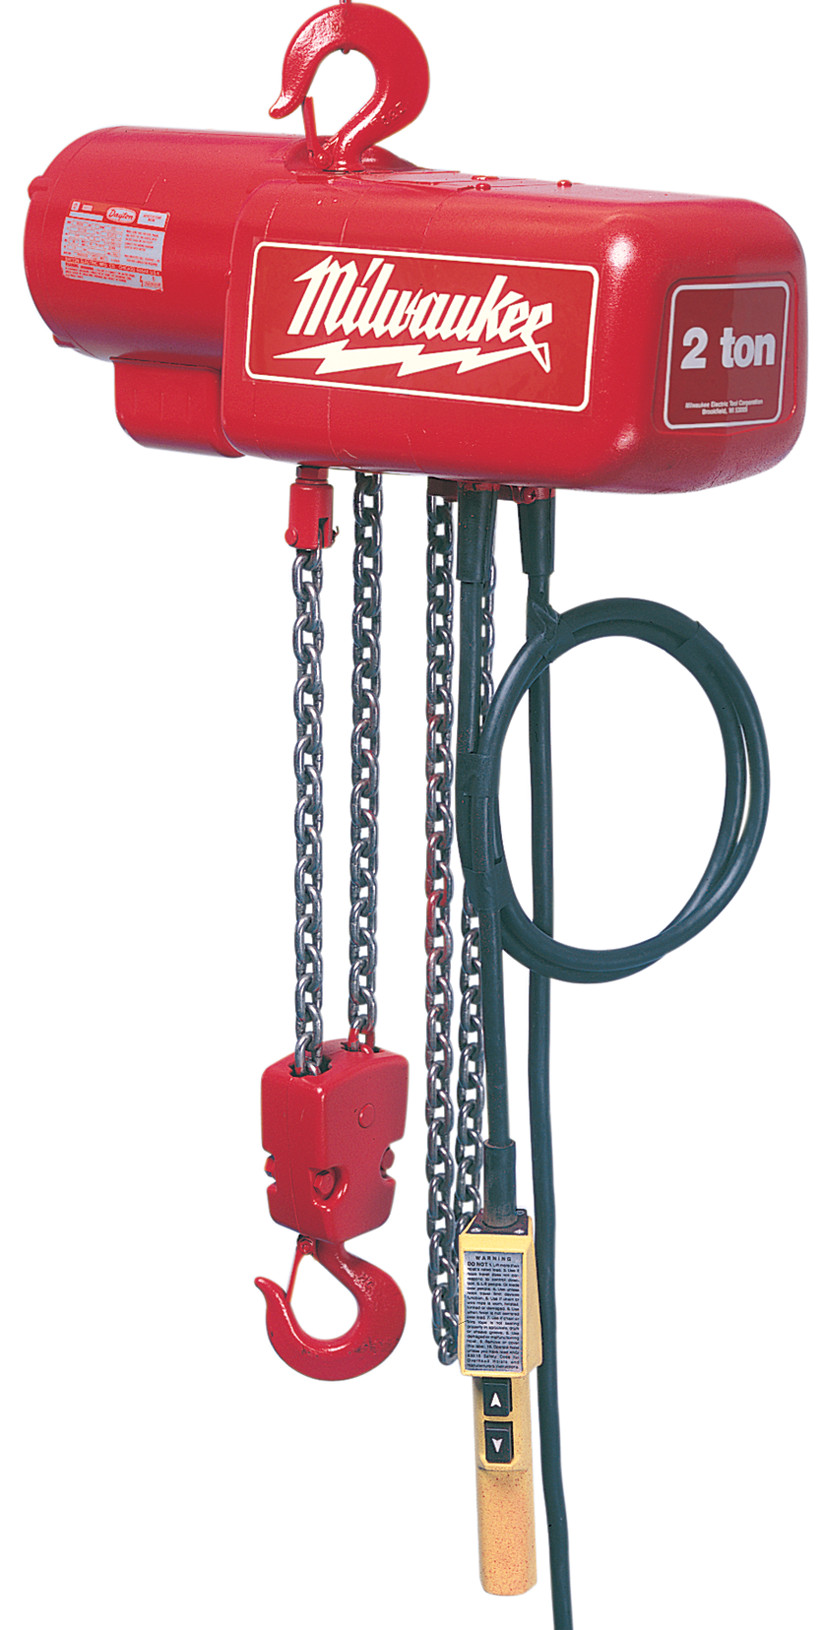 Milwaukee® 9562 1-Phase Lightweight Electric Chain Hoist, 0.5 ton Load, 20 ft H Lifting, 1/2 hp Power Rating, 115 to 230 VAC